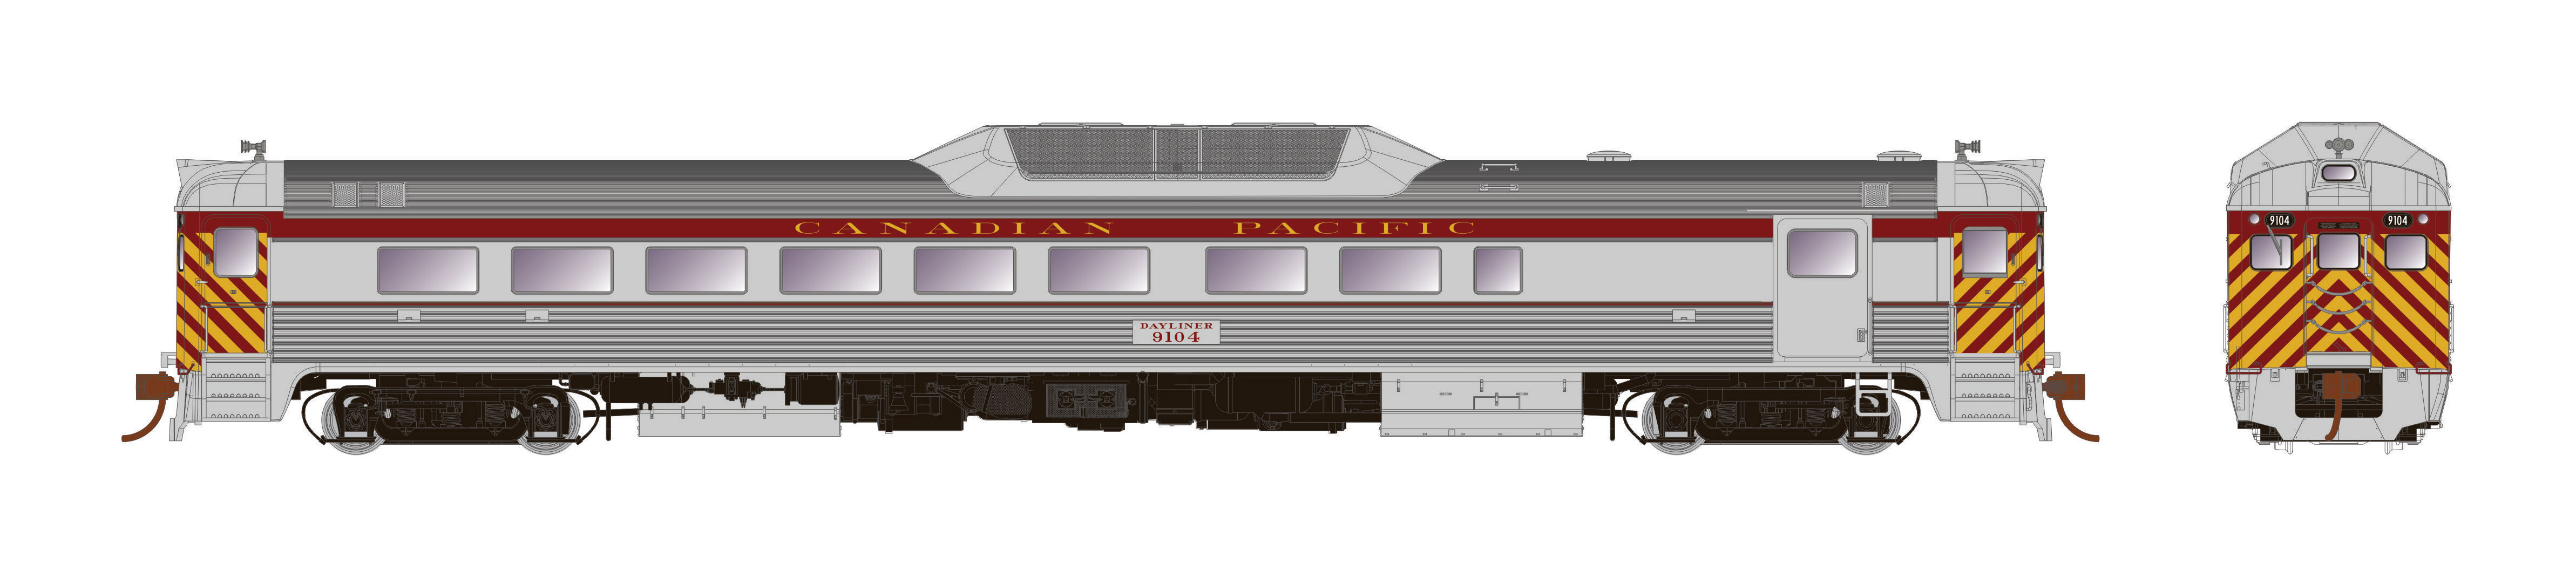 Rapido Trains 16718 - HO Budd RDC-2 - PH2 - DCC/Sound - Canadian Pacific #9104